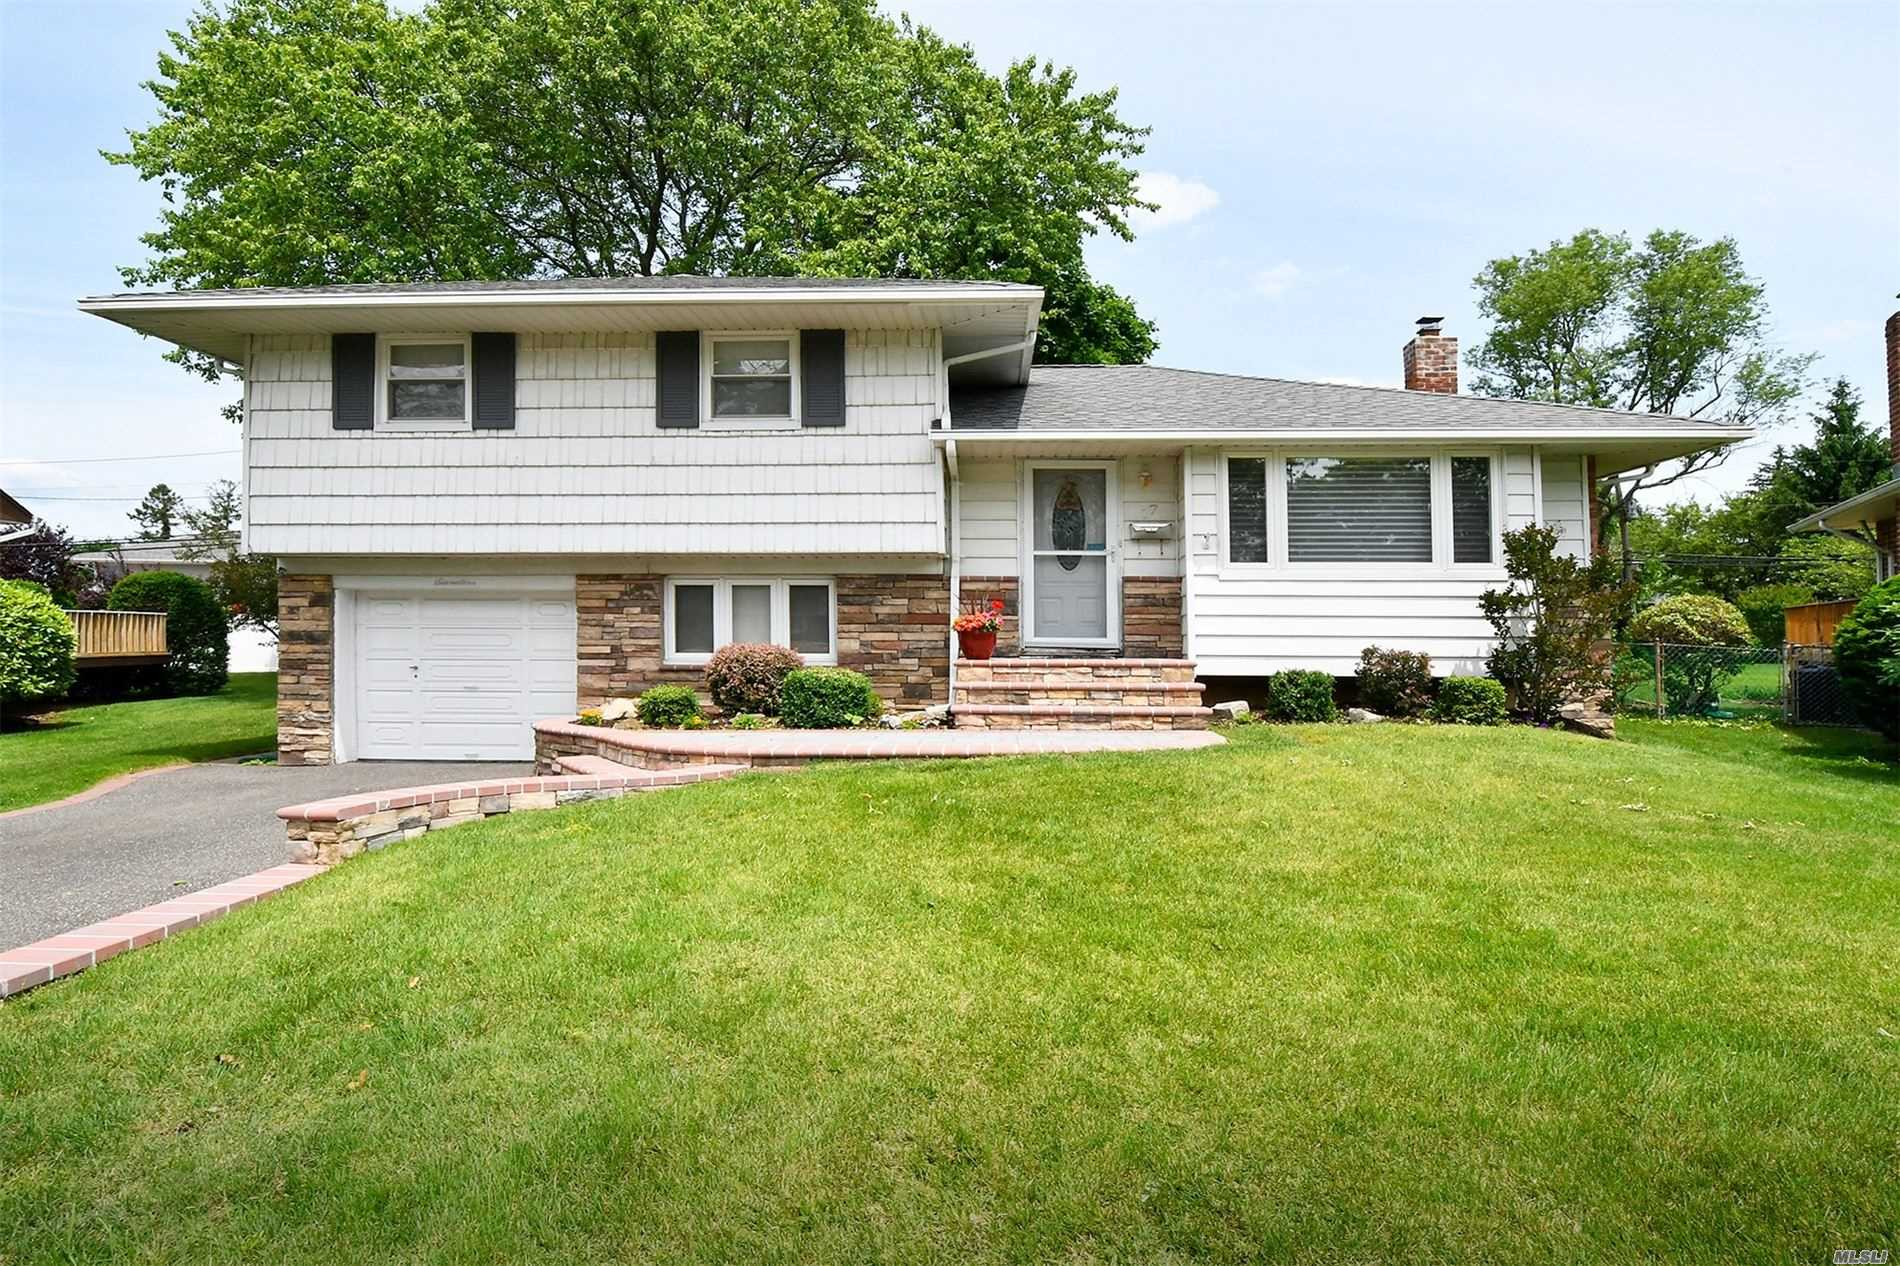 Move Right In To This Pristine 3 Bedroom Home, Located Mid-Block On A Quiet Street In Plainview W/Bethpage Schools. Beautifully Updated Eat In Kitchen W/Ss Appliances, Granite Counters, Tons Of Storage. Renovated Baths. Custom Crown Moldings & Coffered Ceilings. Gleaming Hardwood Floors, Newer Cac, 200 Amp Electric,  Newer Windows & Doors. Large Finished Basement. New Front Steps & Stone Trim Facade. Park Like Property W/Concrete Patio.